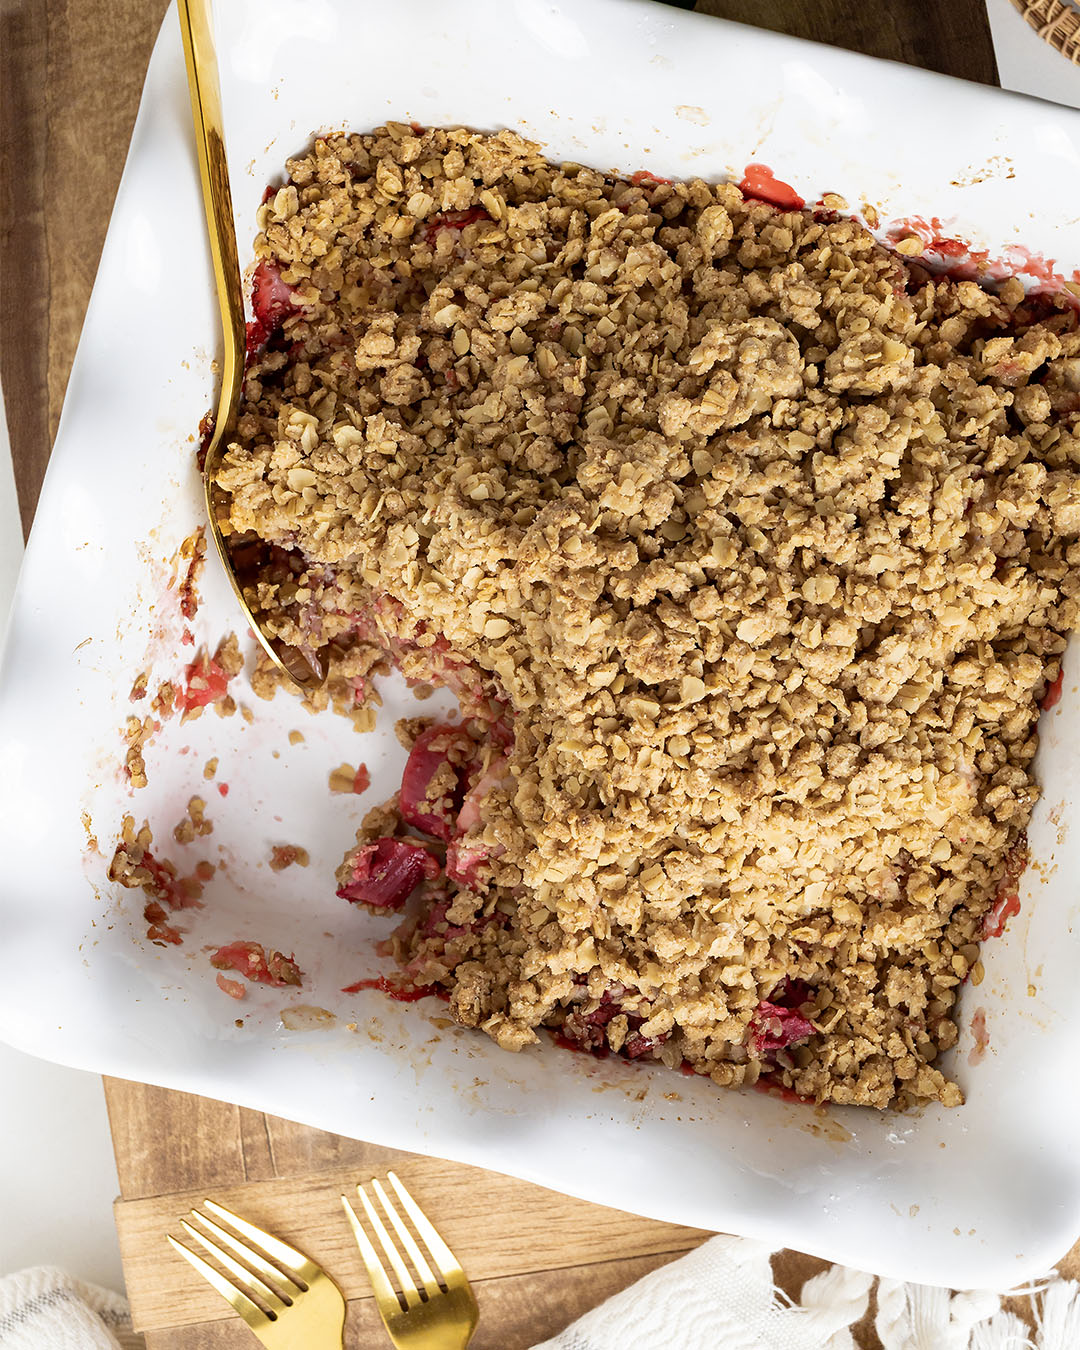 Rhubarb season is in full swing around here! I decided that the first thing I would bake this year is this strawberry rhubarb crisp recipe and I'm sharing it below if you need a new rhubarb recipe to try!